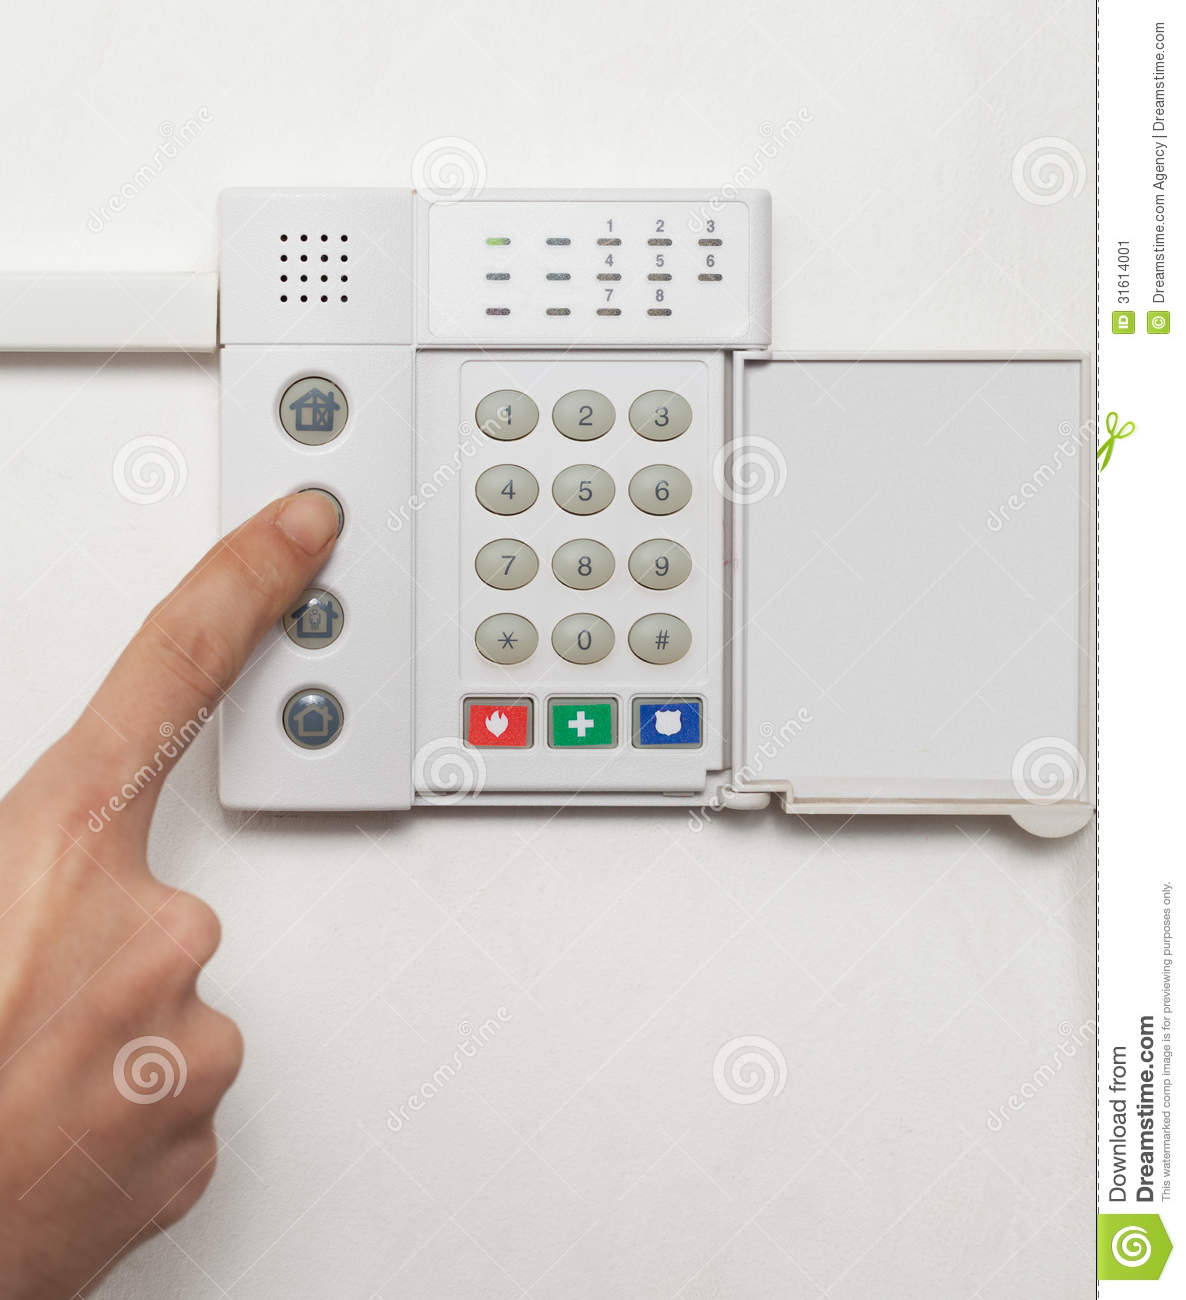 Home Security Stock Image Of Emergency Help Hand 31614001 Light Fence Beeper